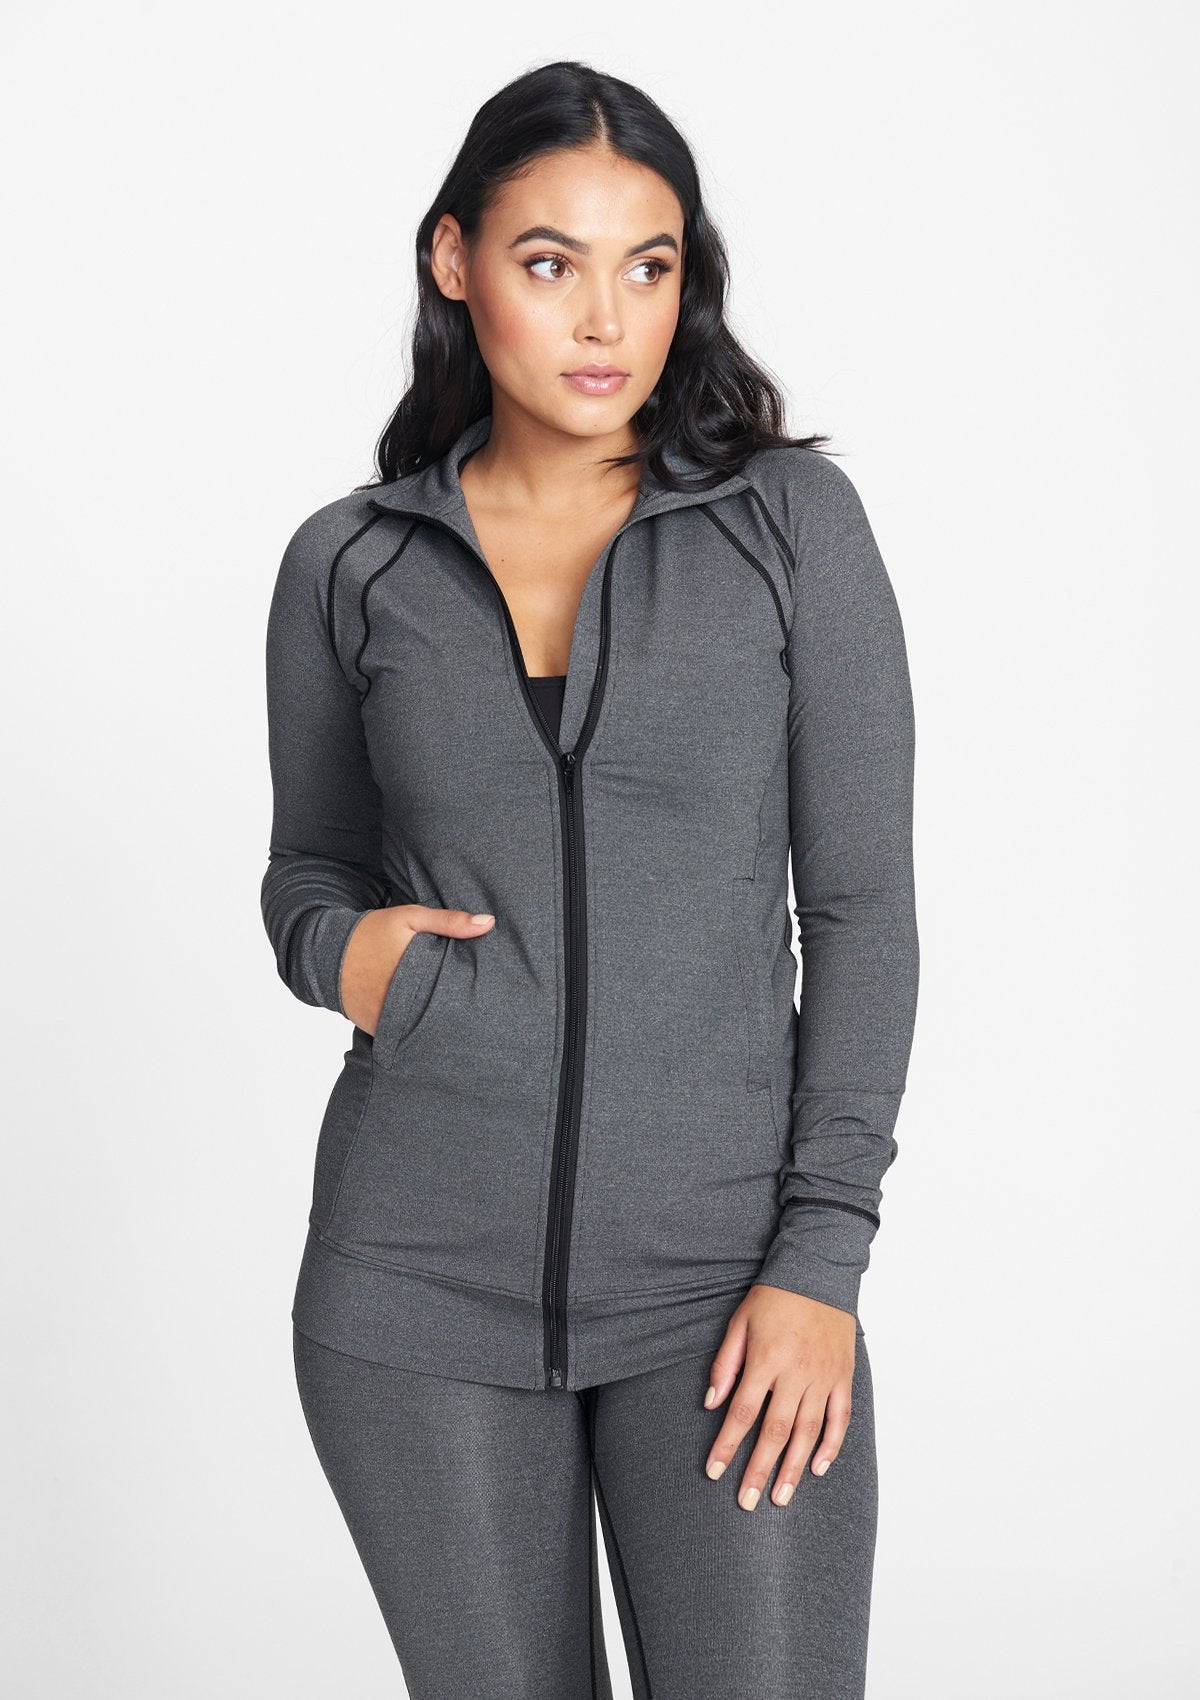 Alloy Apparel Tall Full Zip Active Jacket for Women in Heather Grey Size M   Polyester